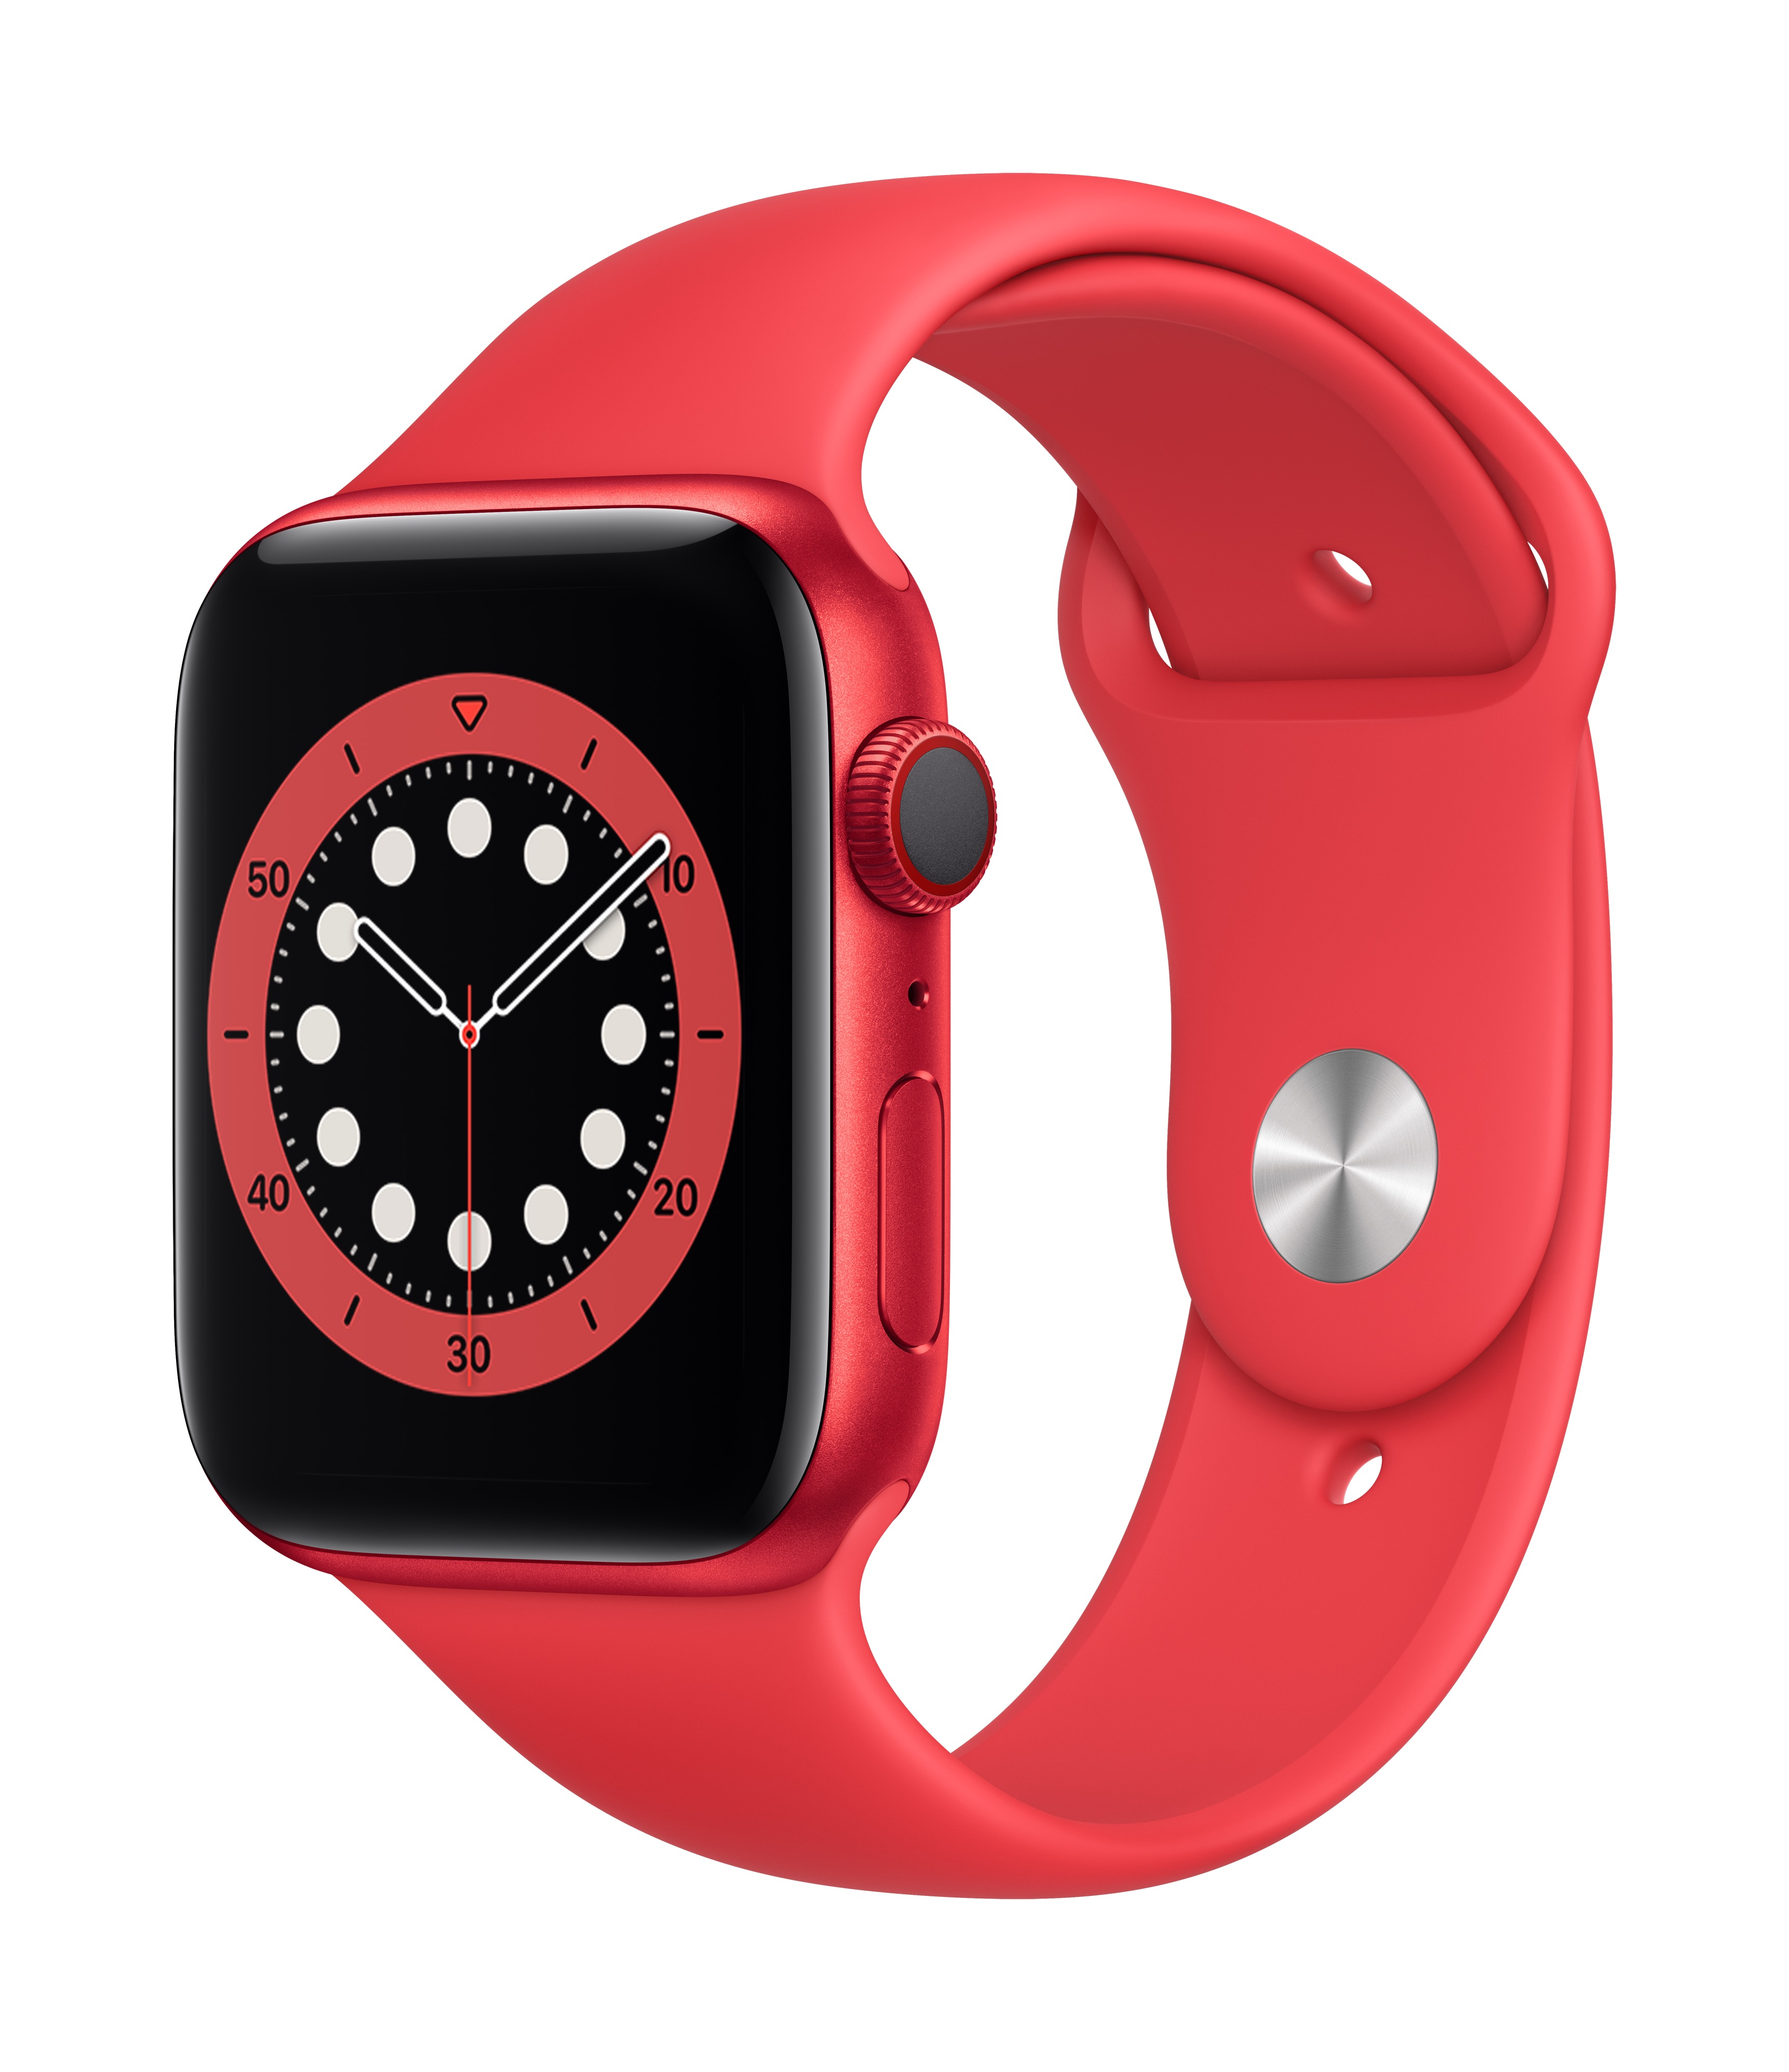 Apple_Watch_Series_6_Cellular_44mm_RED_Aluminum_Product_RED_Sport_Band_34R_Screen__USEN